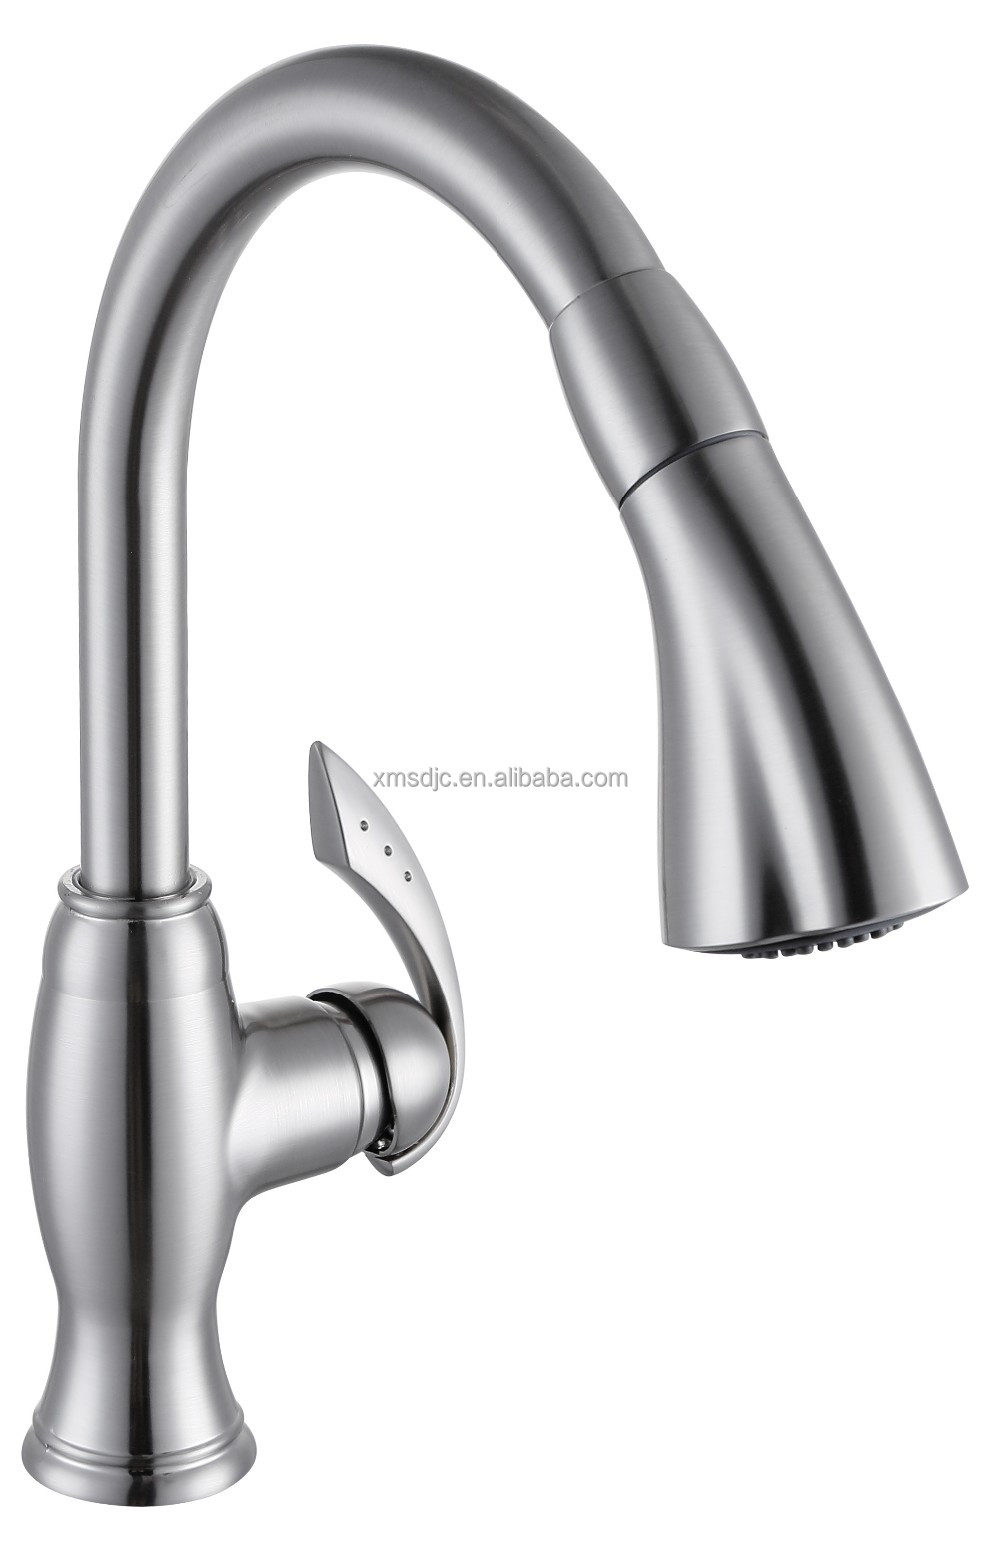 Delta Kitchen Faucet Cartridge Delta Ceramic Faucet Cartridge Delta Ceramic Faucet Cartridge